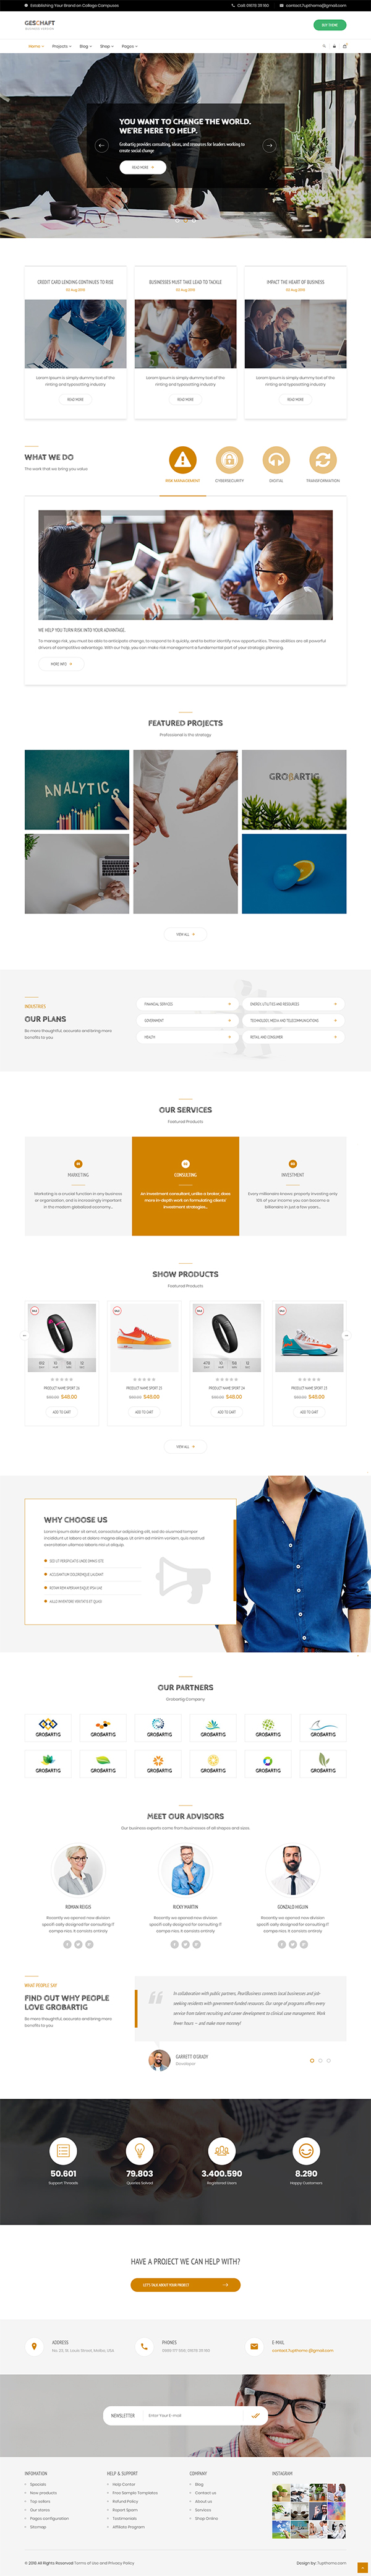 Geschaft - Business WooCommerce WordPress Theme